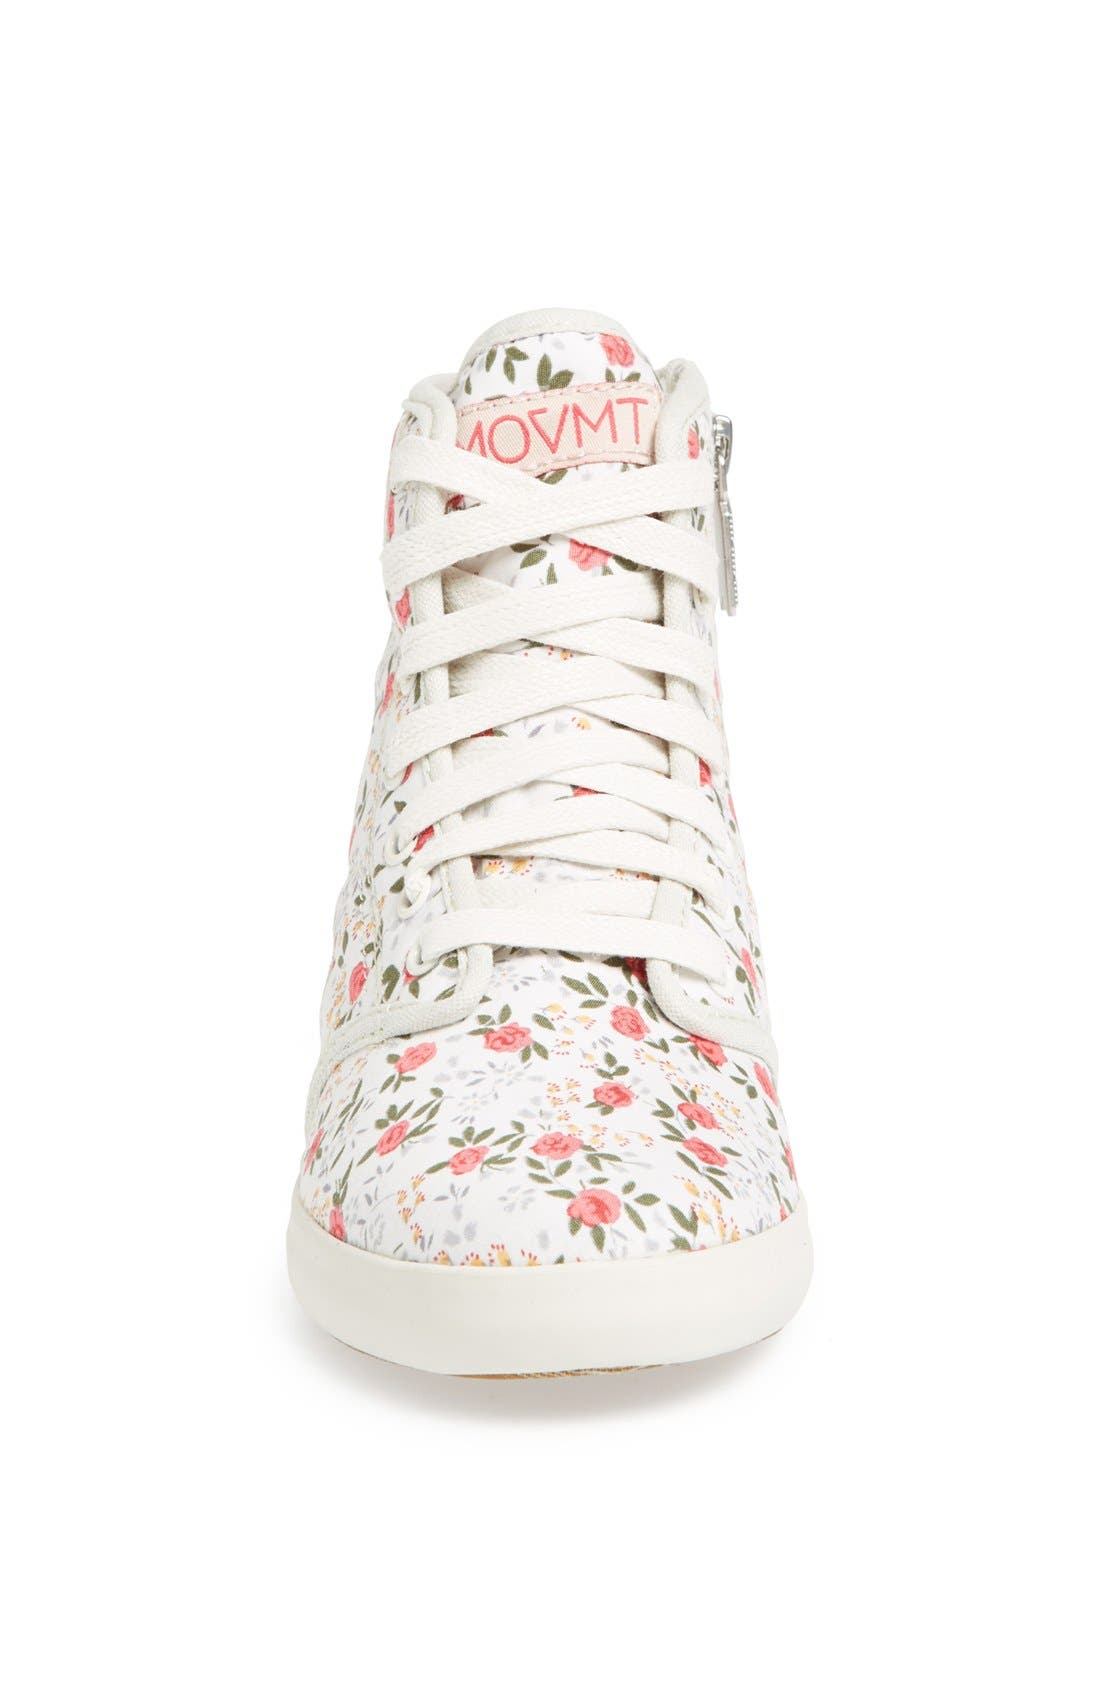 Alternate Image 3  - The People's Movement 'Marcos' High Top Sneaker (Women)